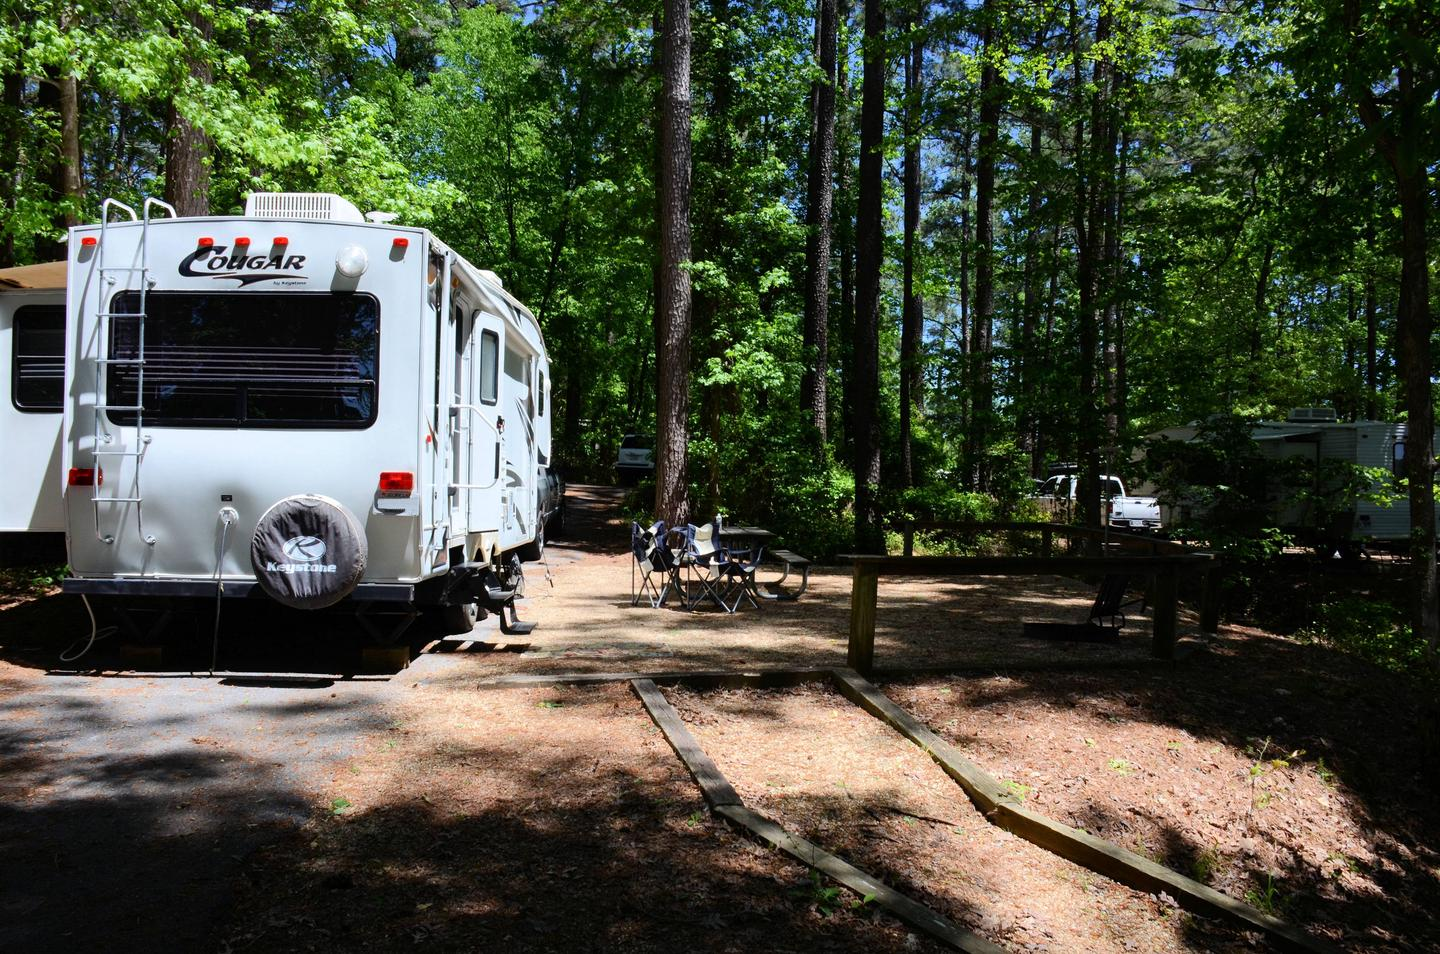 Pull-thru entrance, awning-side clearance.McKinney Campground, campsite 128.